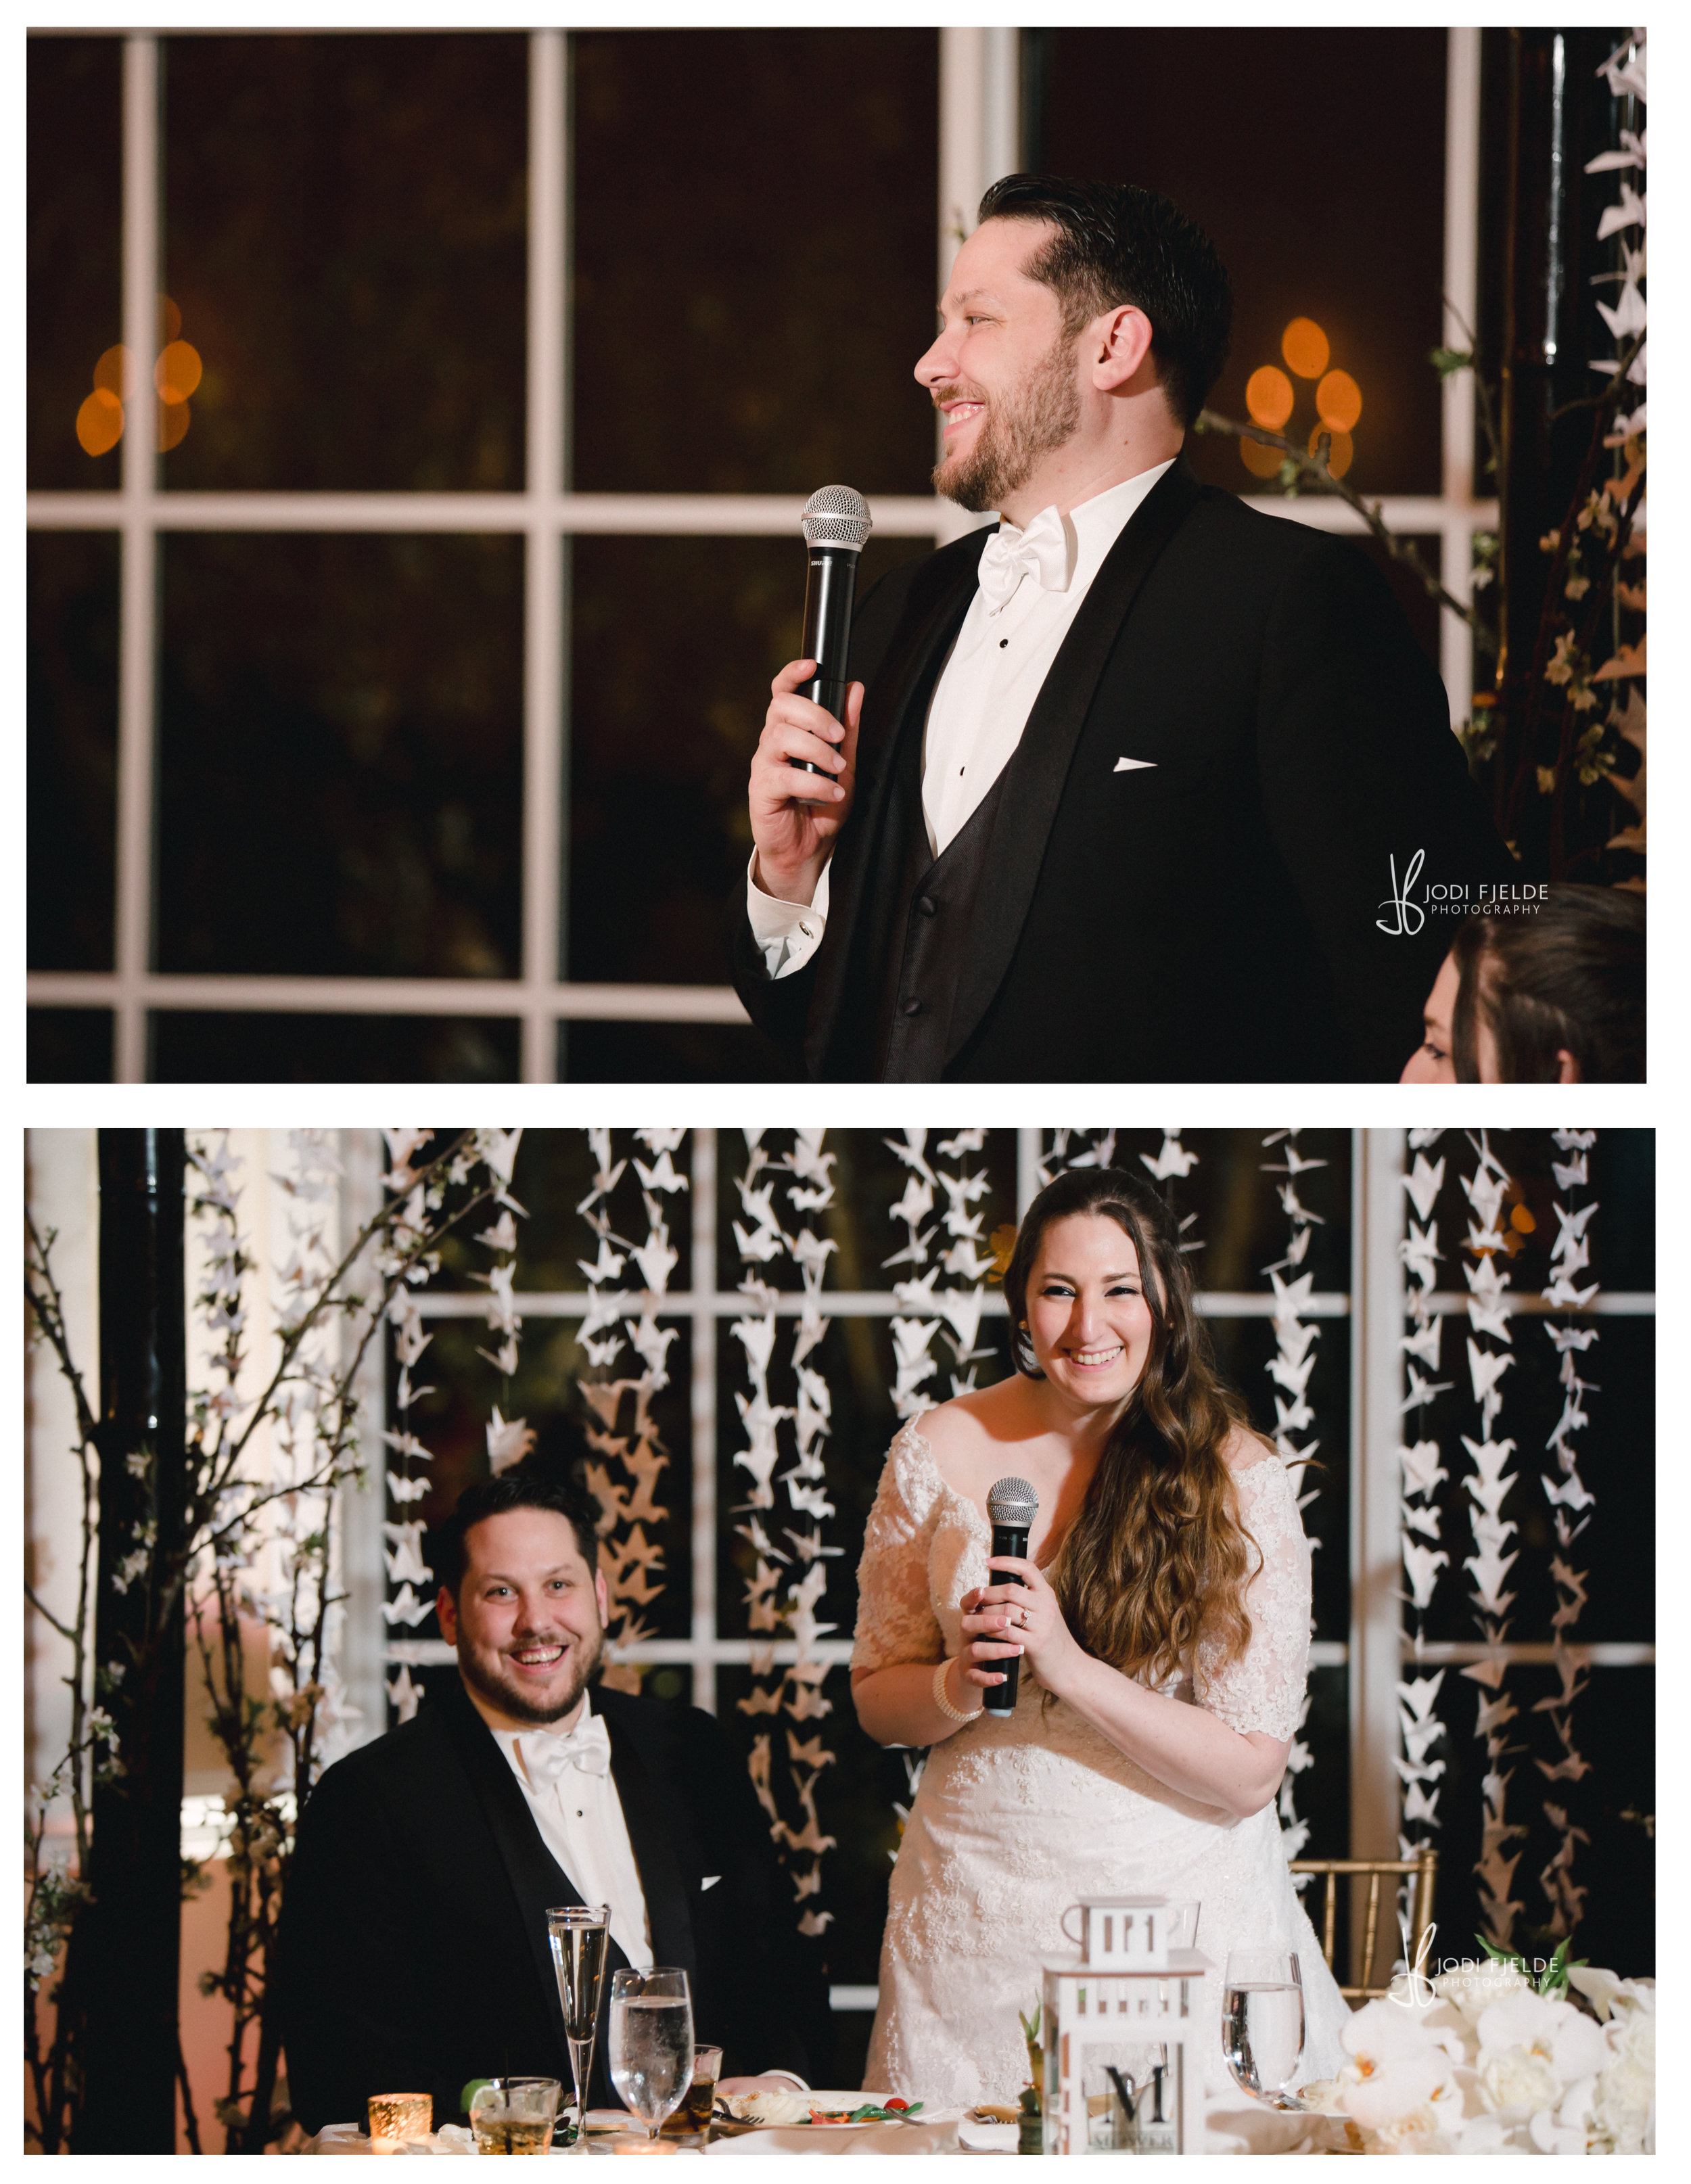 Deer_Creek_Country_Club_Wedding_Jodi_Fjelde_Photography_Andrea_Jason_21.jpg